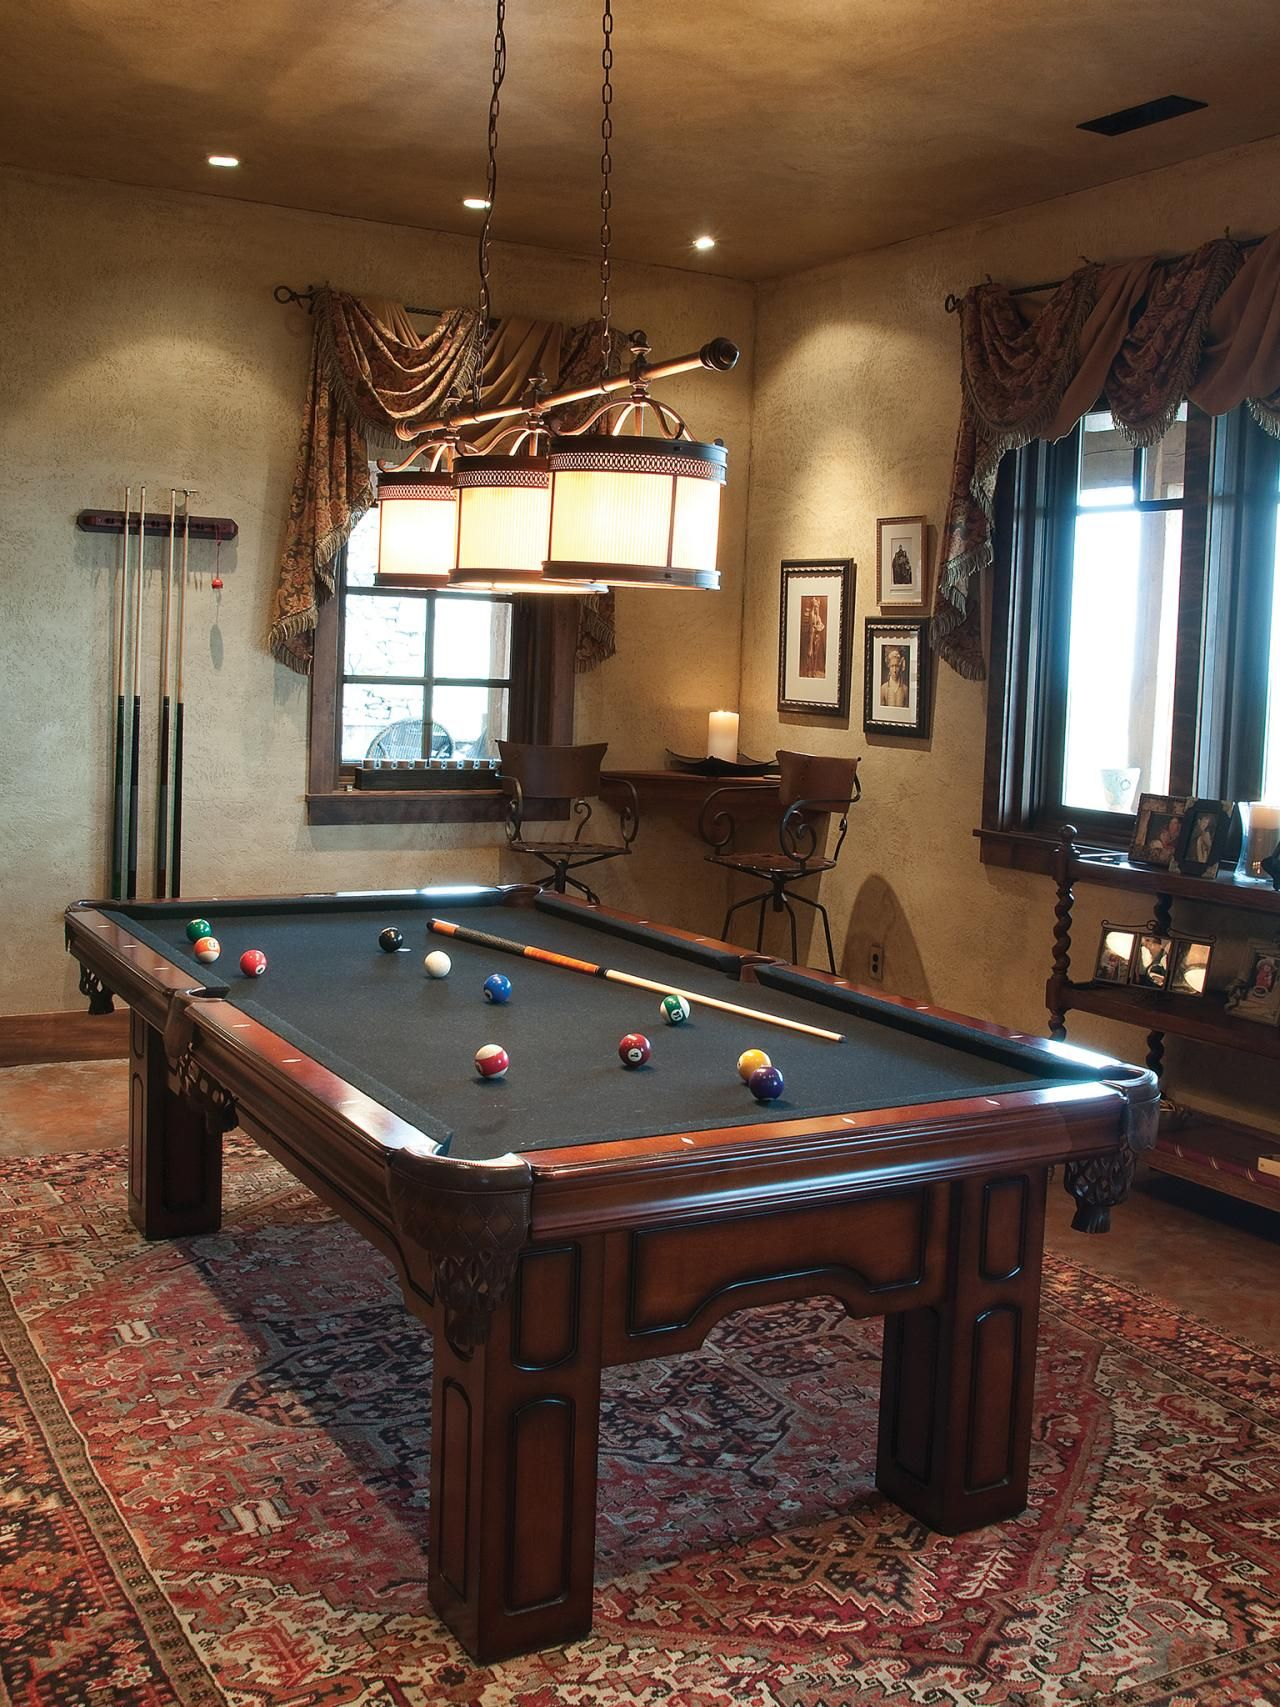 A Lotus Pattern Oriental Carpet And Antique Pool Table Imbue This Playroom  With The Elegance